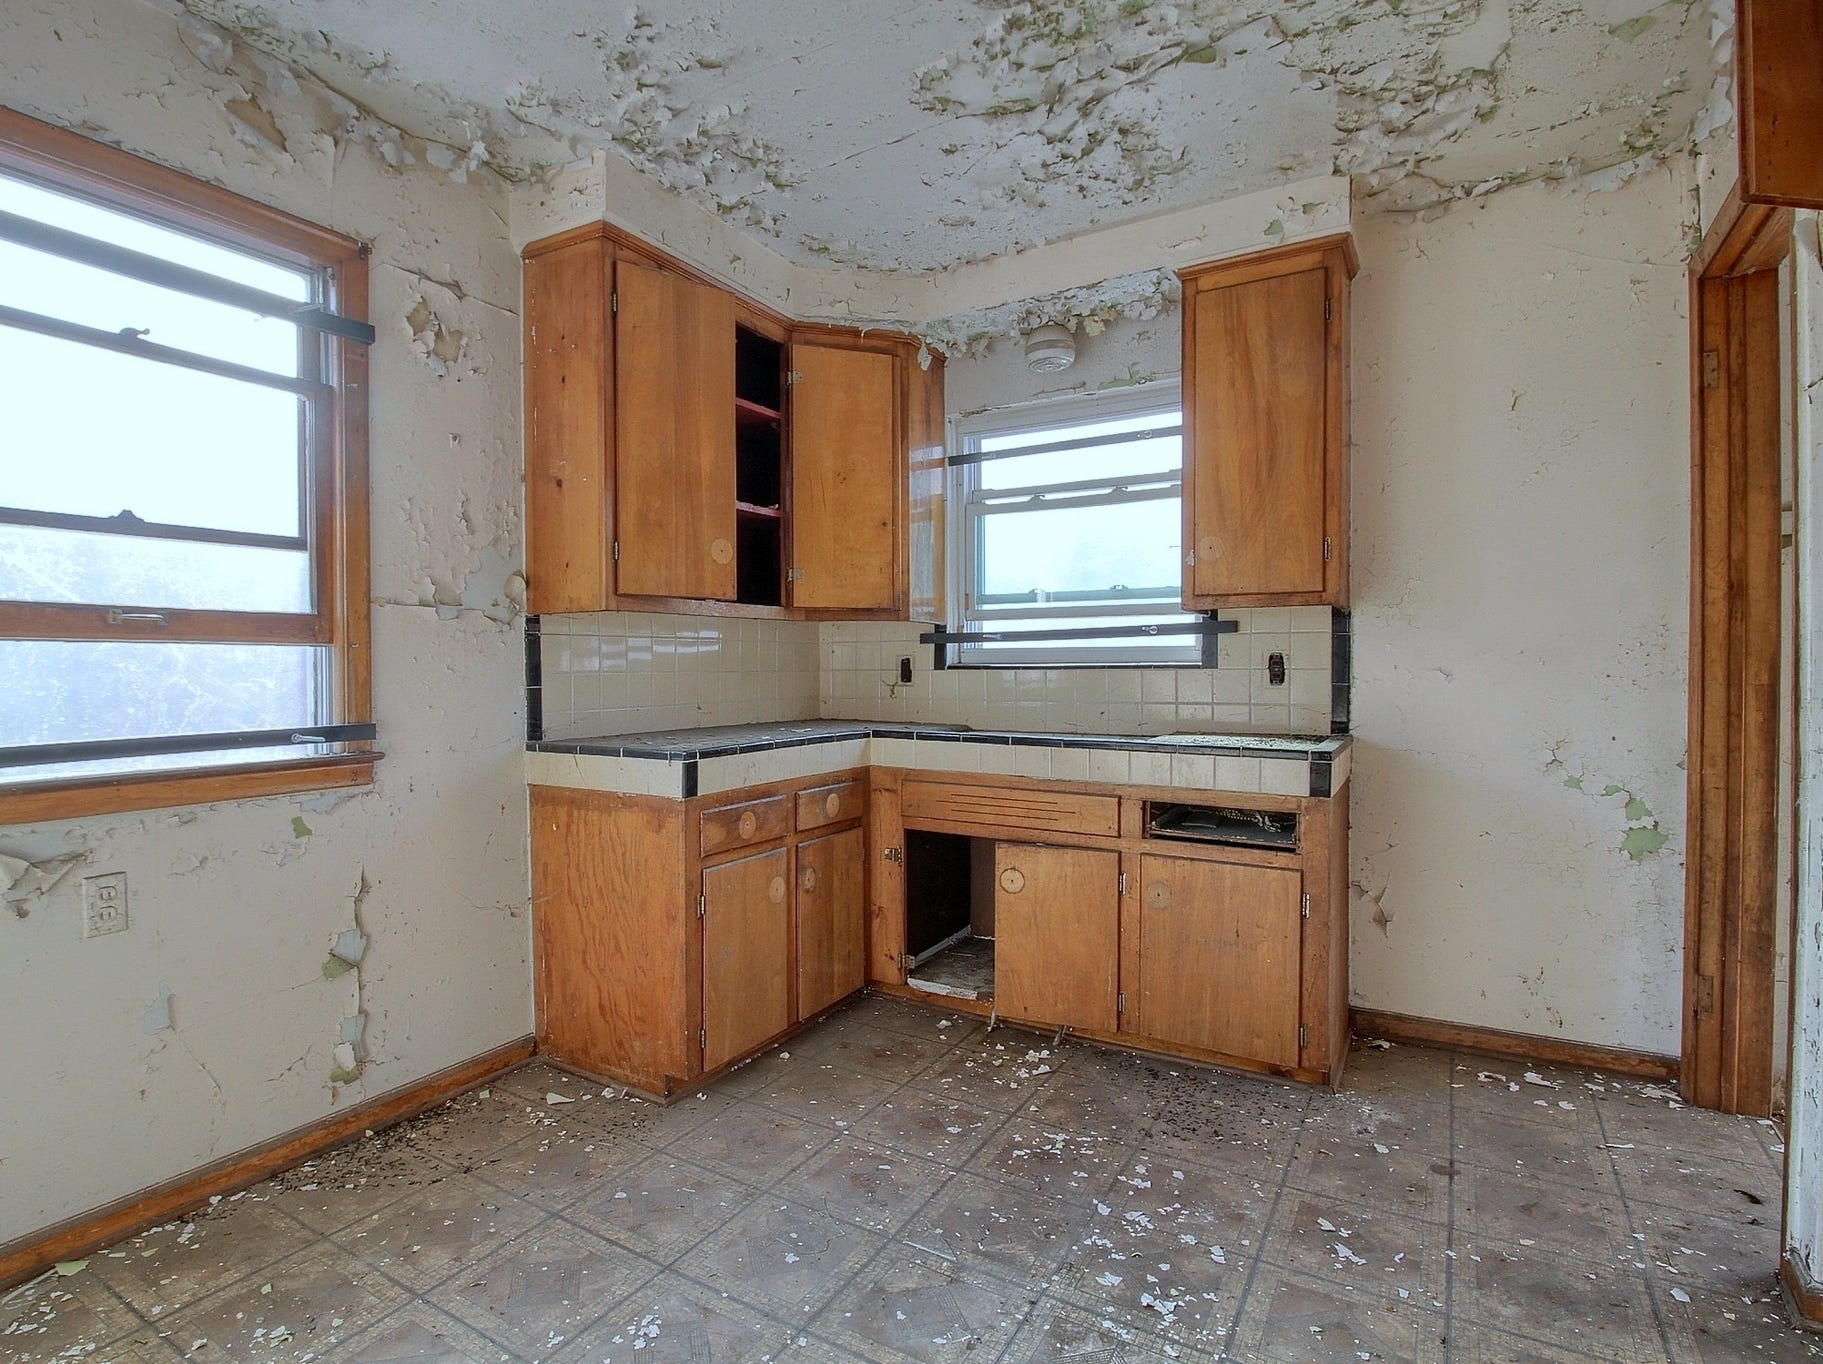 Before: This is the kitchen of Maria Walkenback's new home in Detroit's Warrendale neighborhood before the 983-square-foot house was renovated.